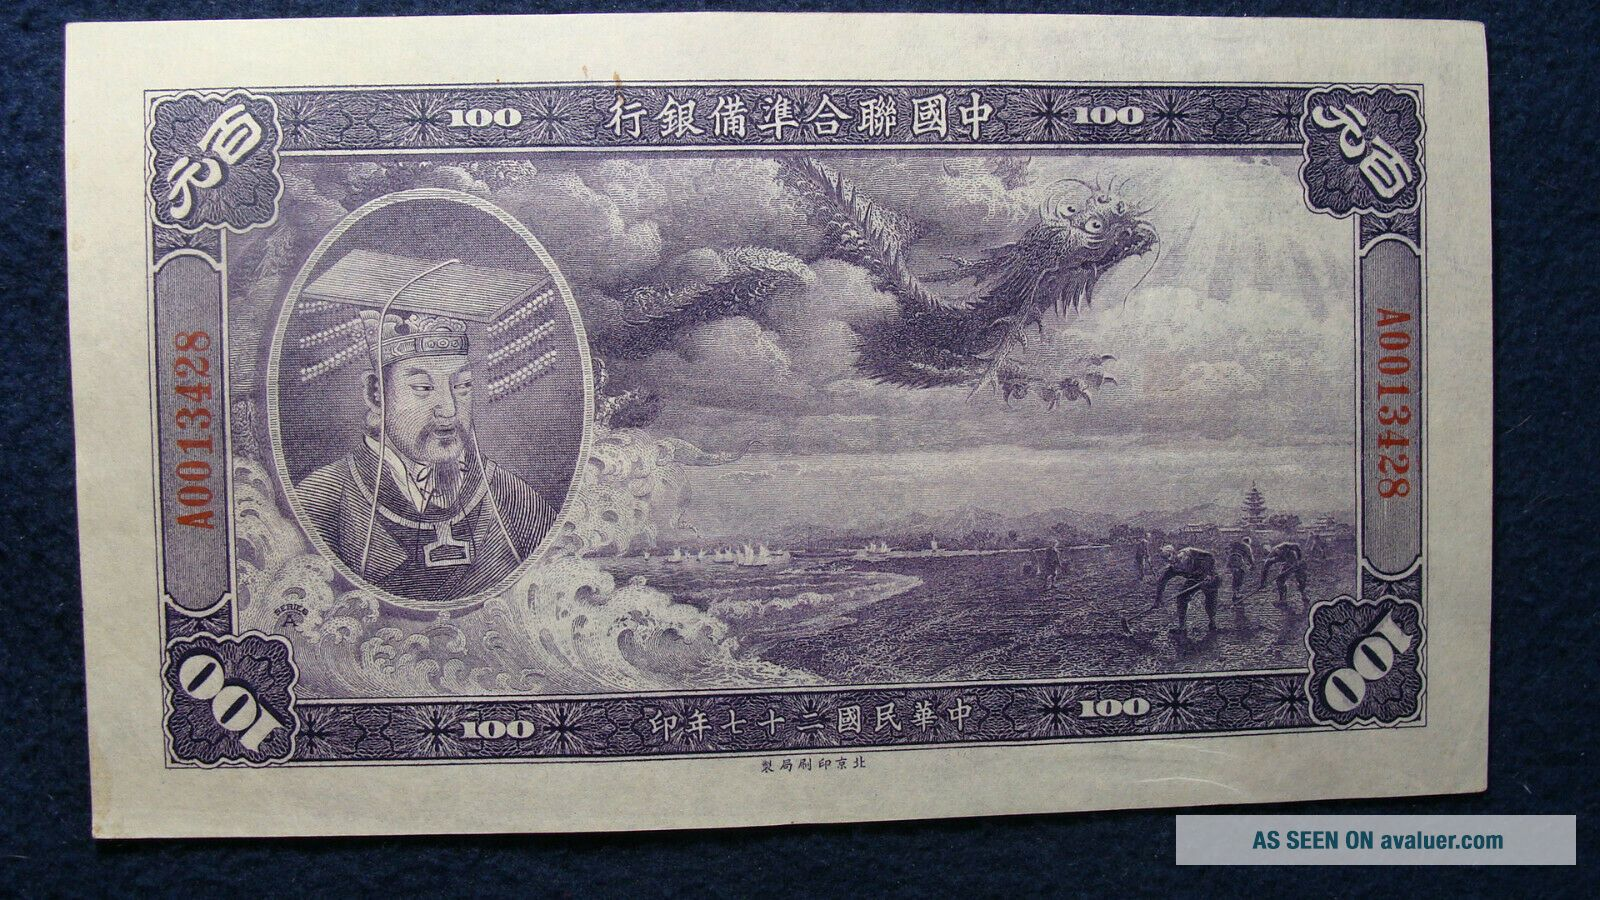 1 FEDERAL RESERVE BANK OF CHINA $100 NOTE CRISP AU (DRAGONS IN THE SKY)